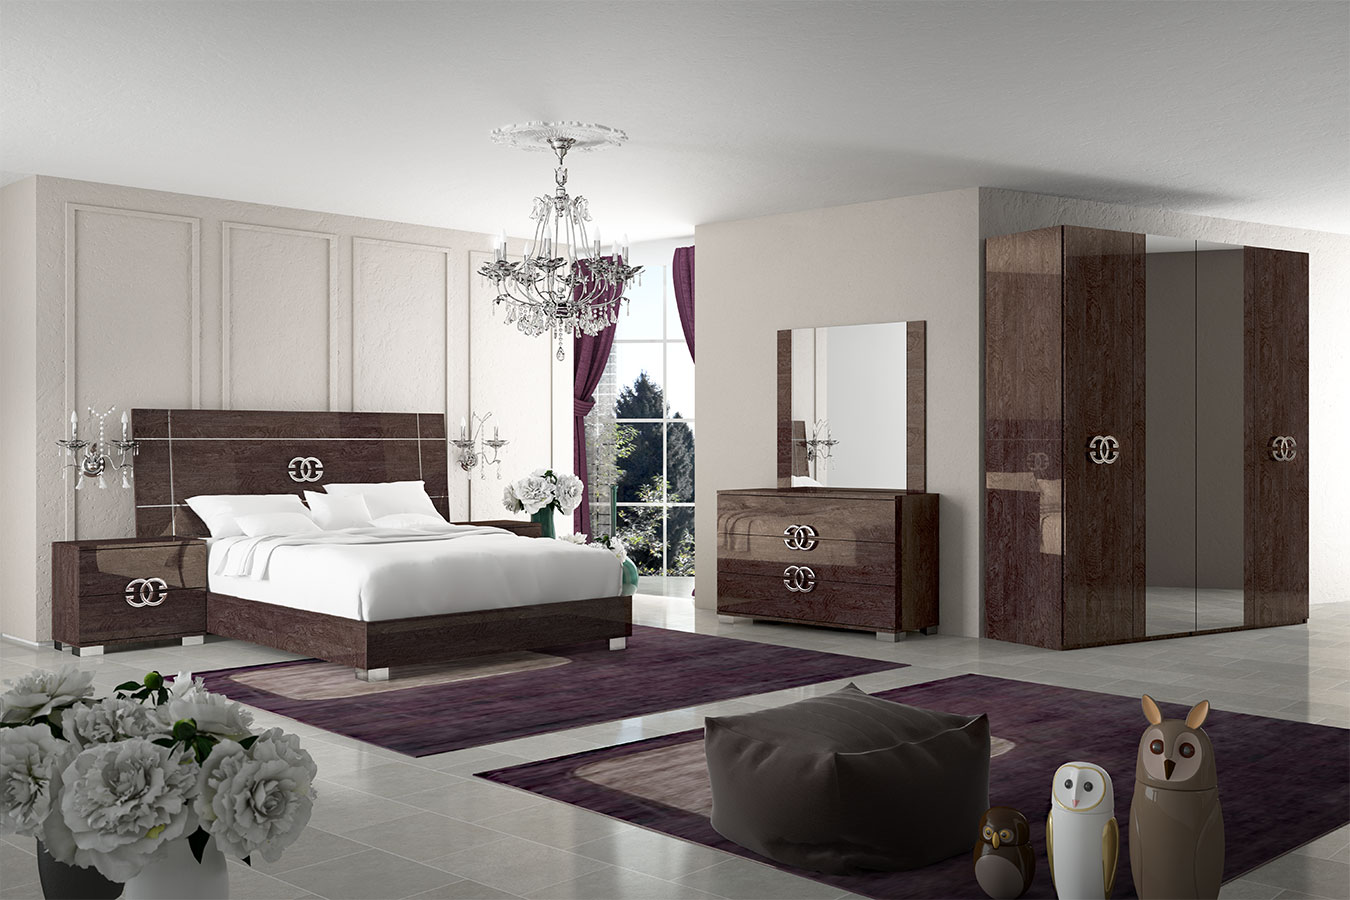 http://phovip.com.vn/pictures/catalog/product/details/bo-giuong-prestiger-night1.jpg